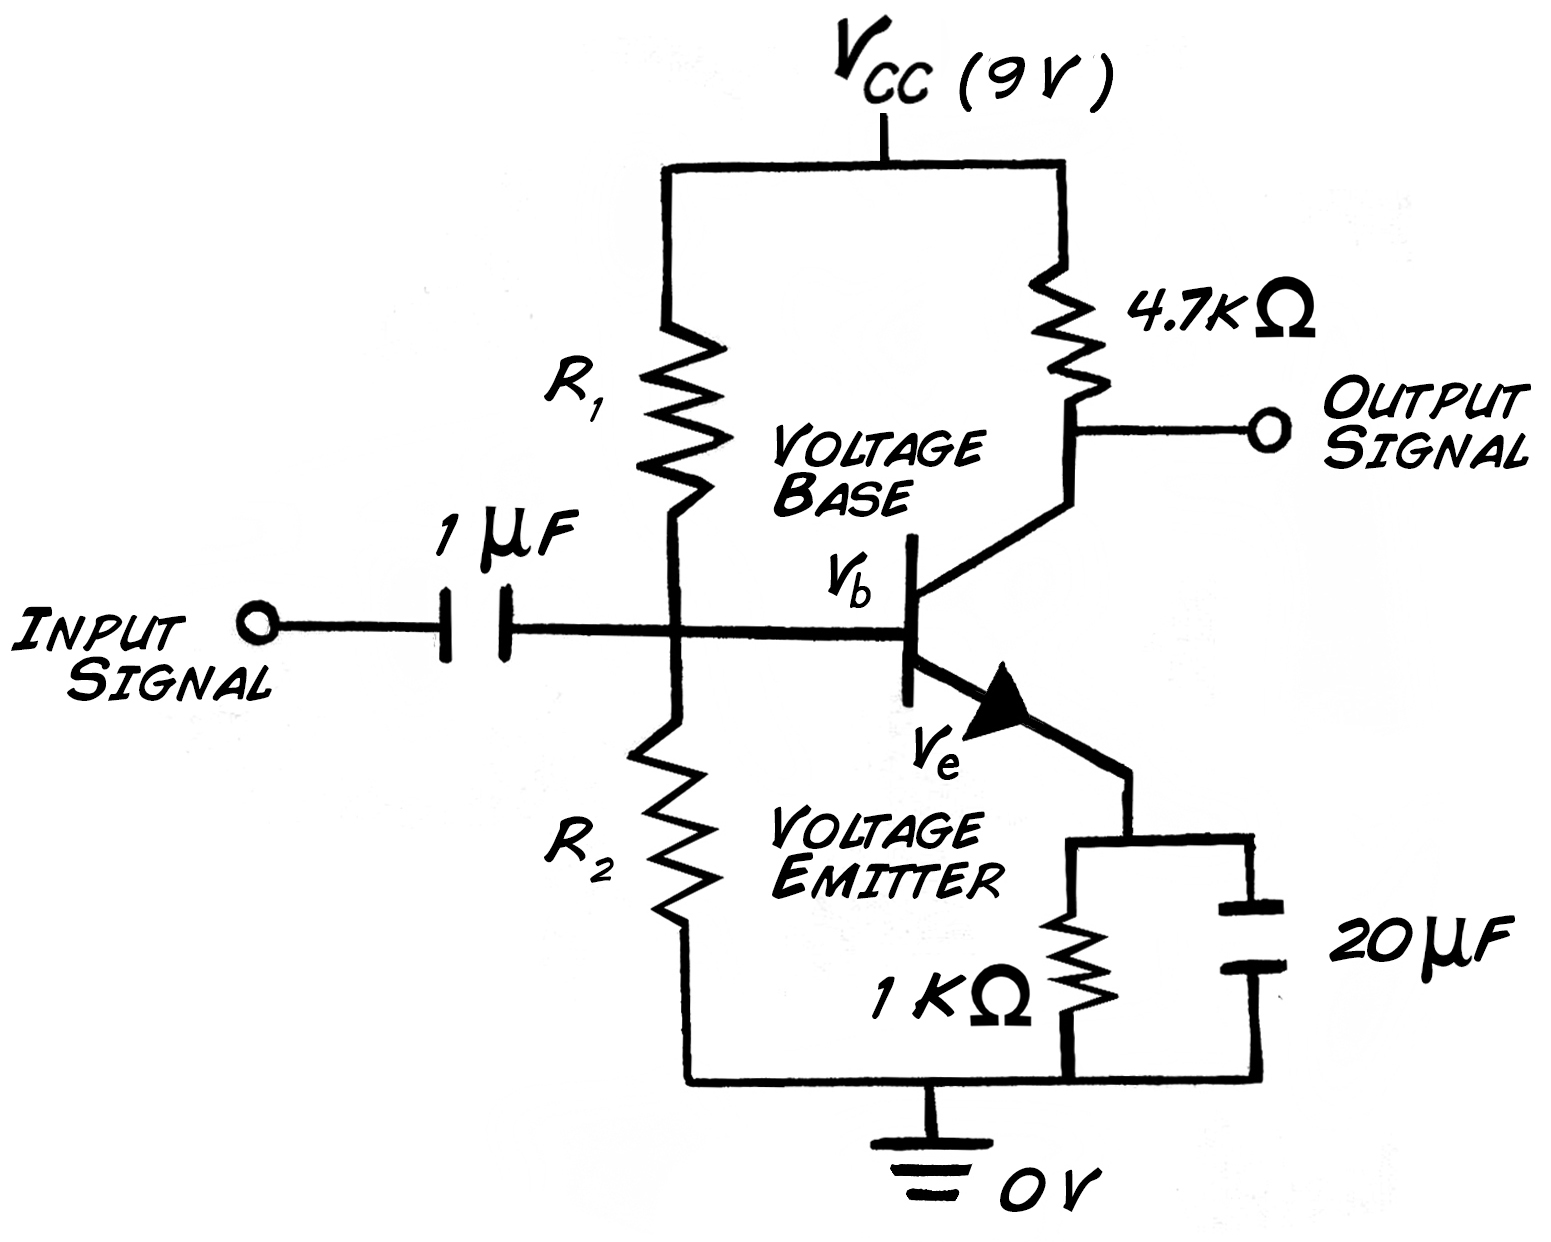 Transistor Theory Golfclub Intercom Circuit Electronic Circuits And Diagram Experiment Design